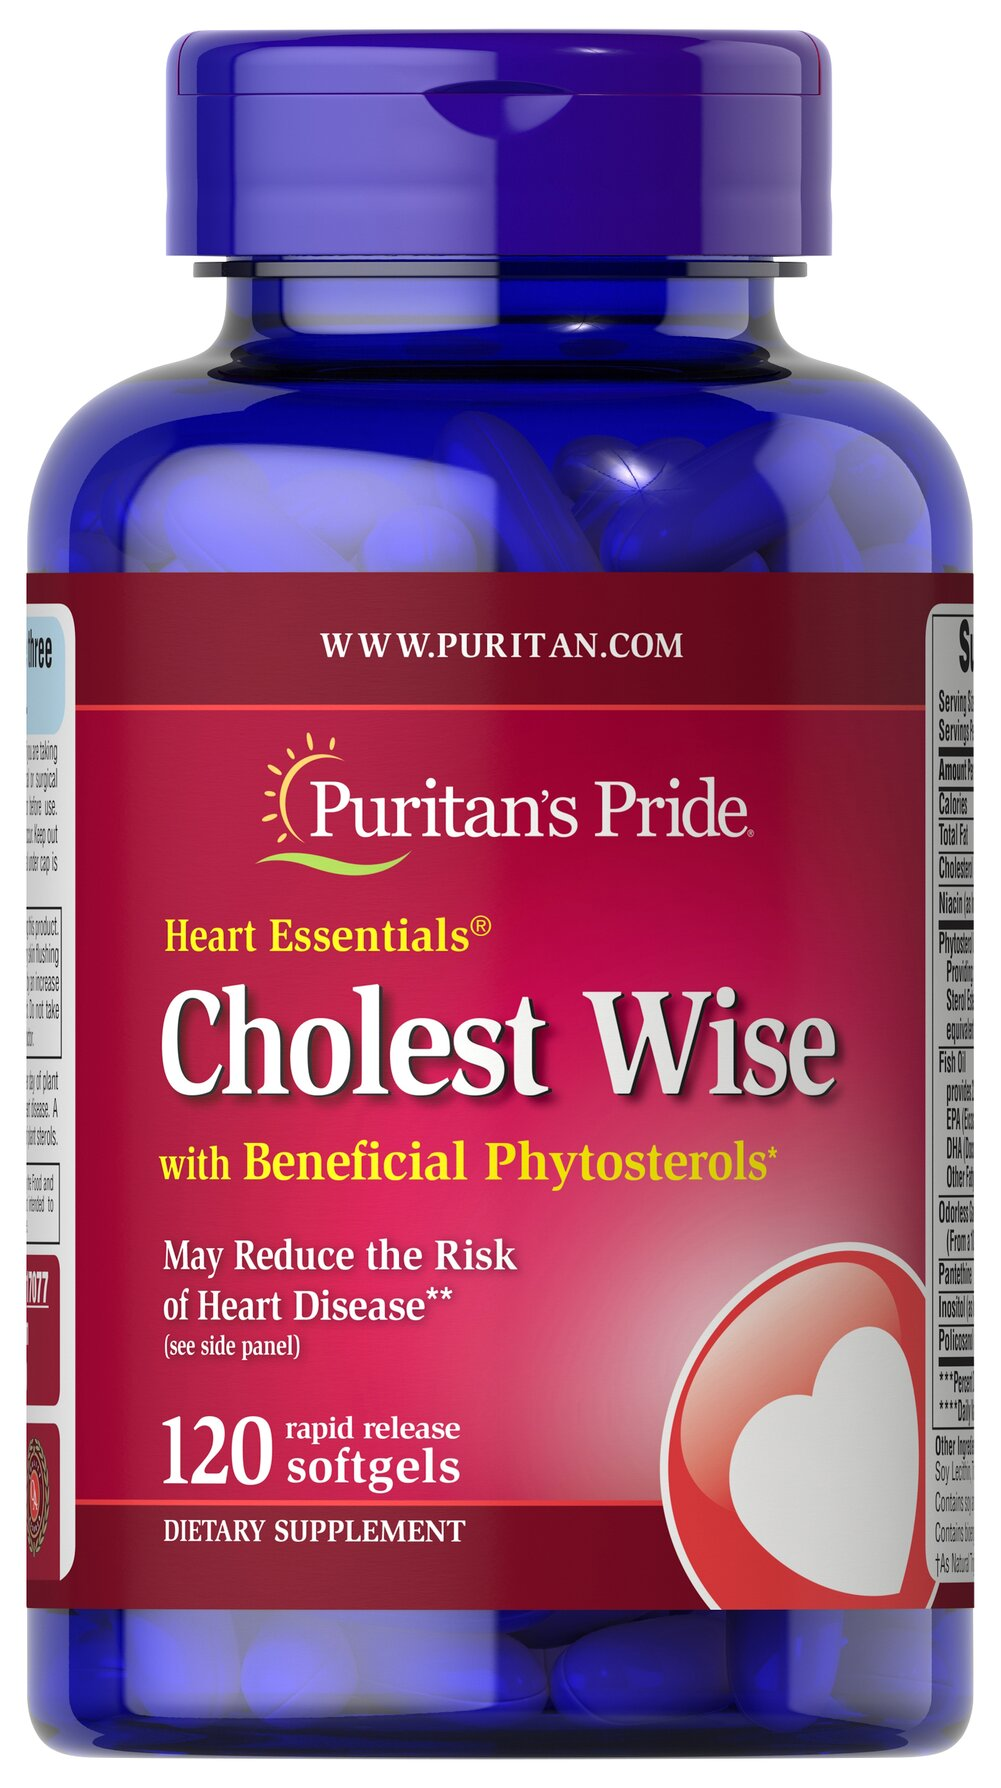 Heart Essentials™ Cholest Wise with Plant Sterols